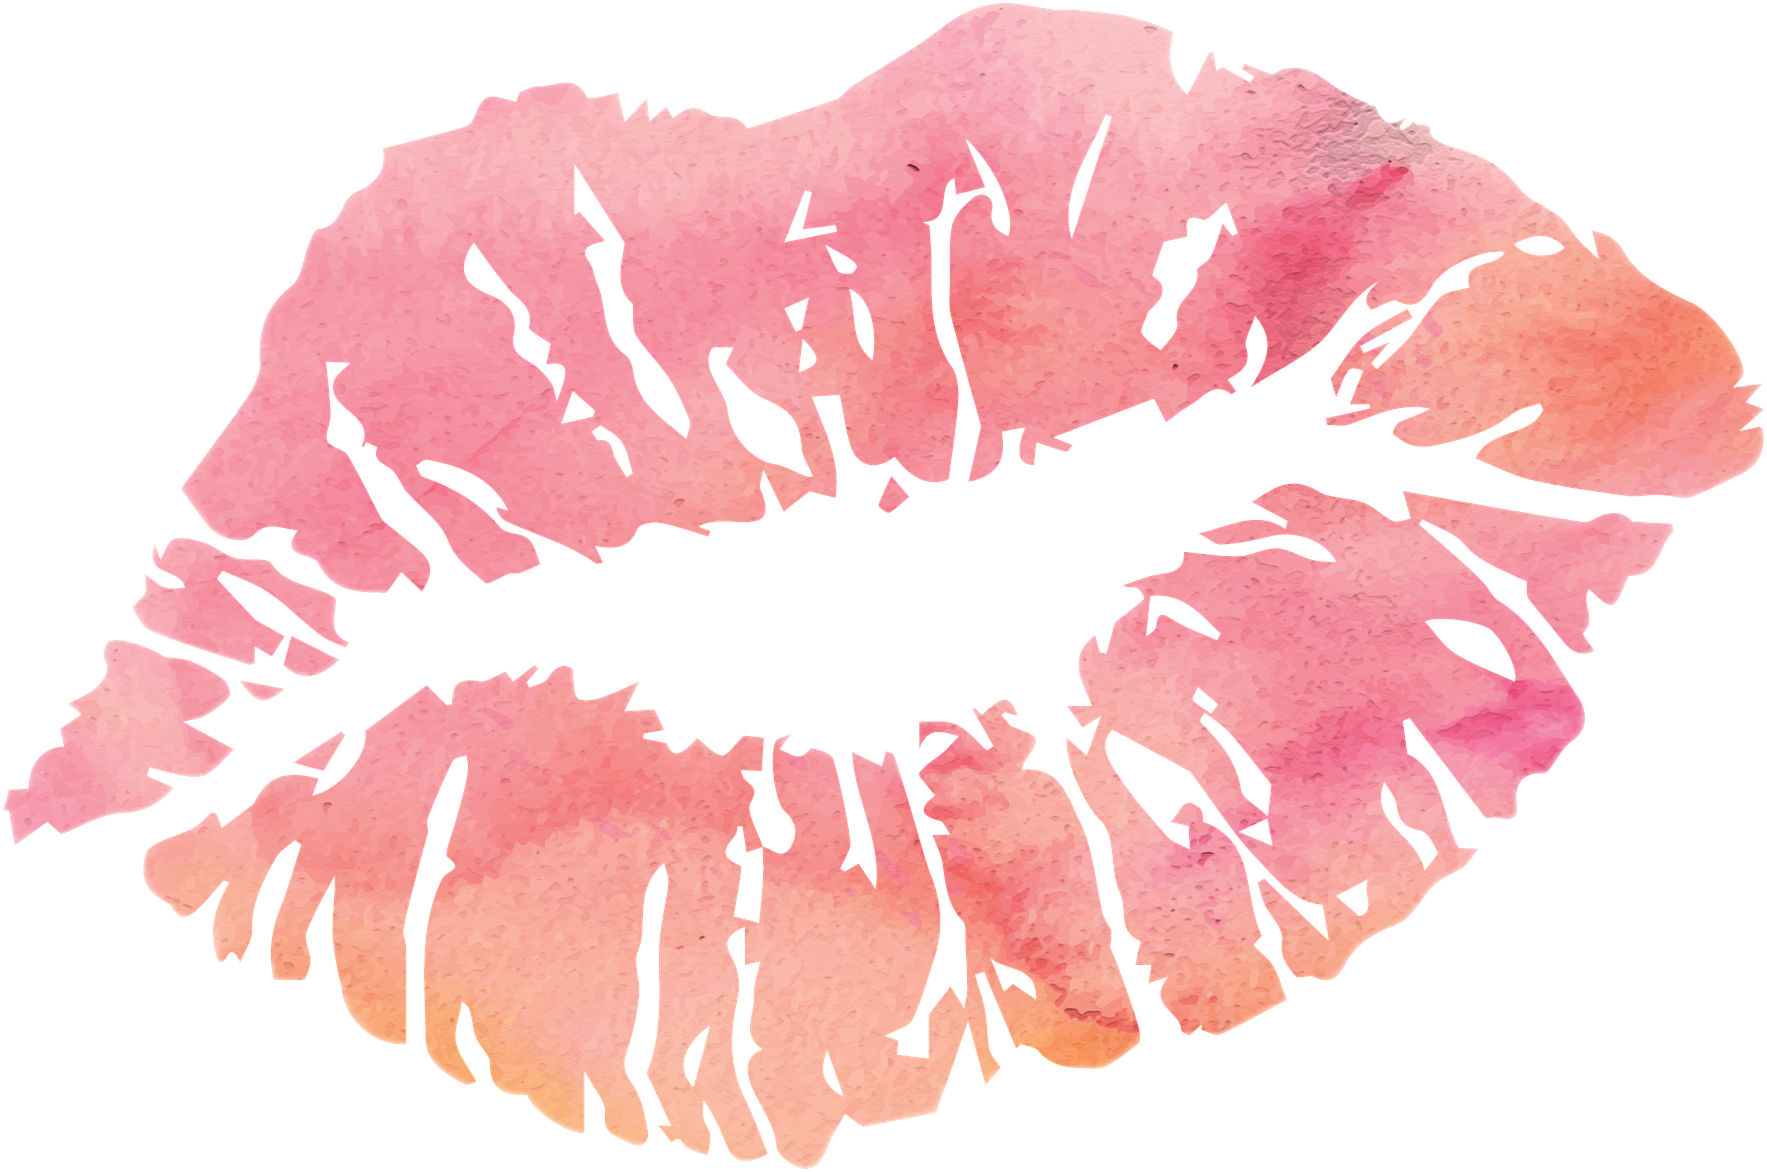 Lipstick clipart lip drawing. Clip art pink lips